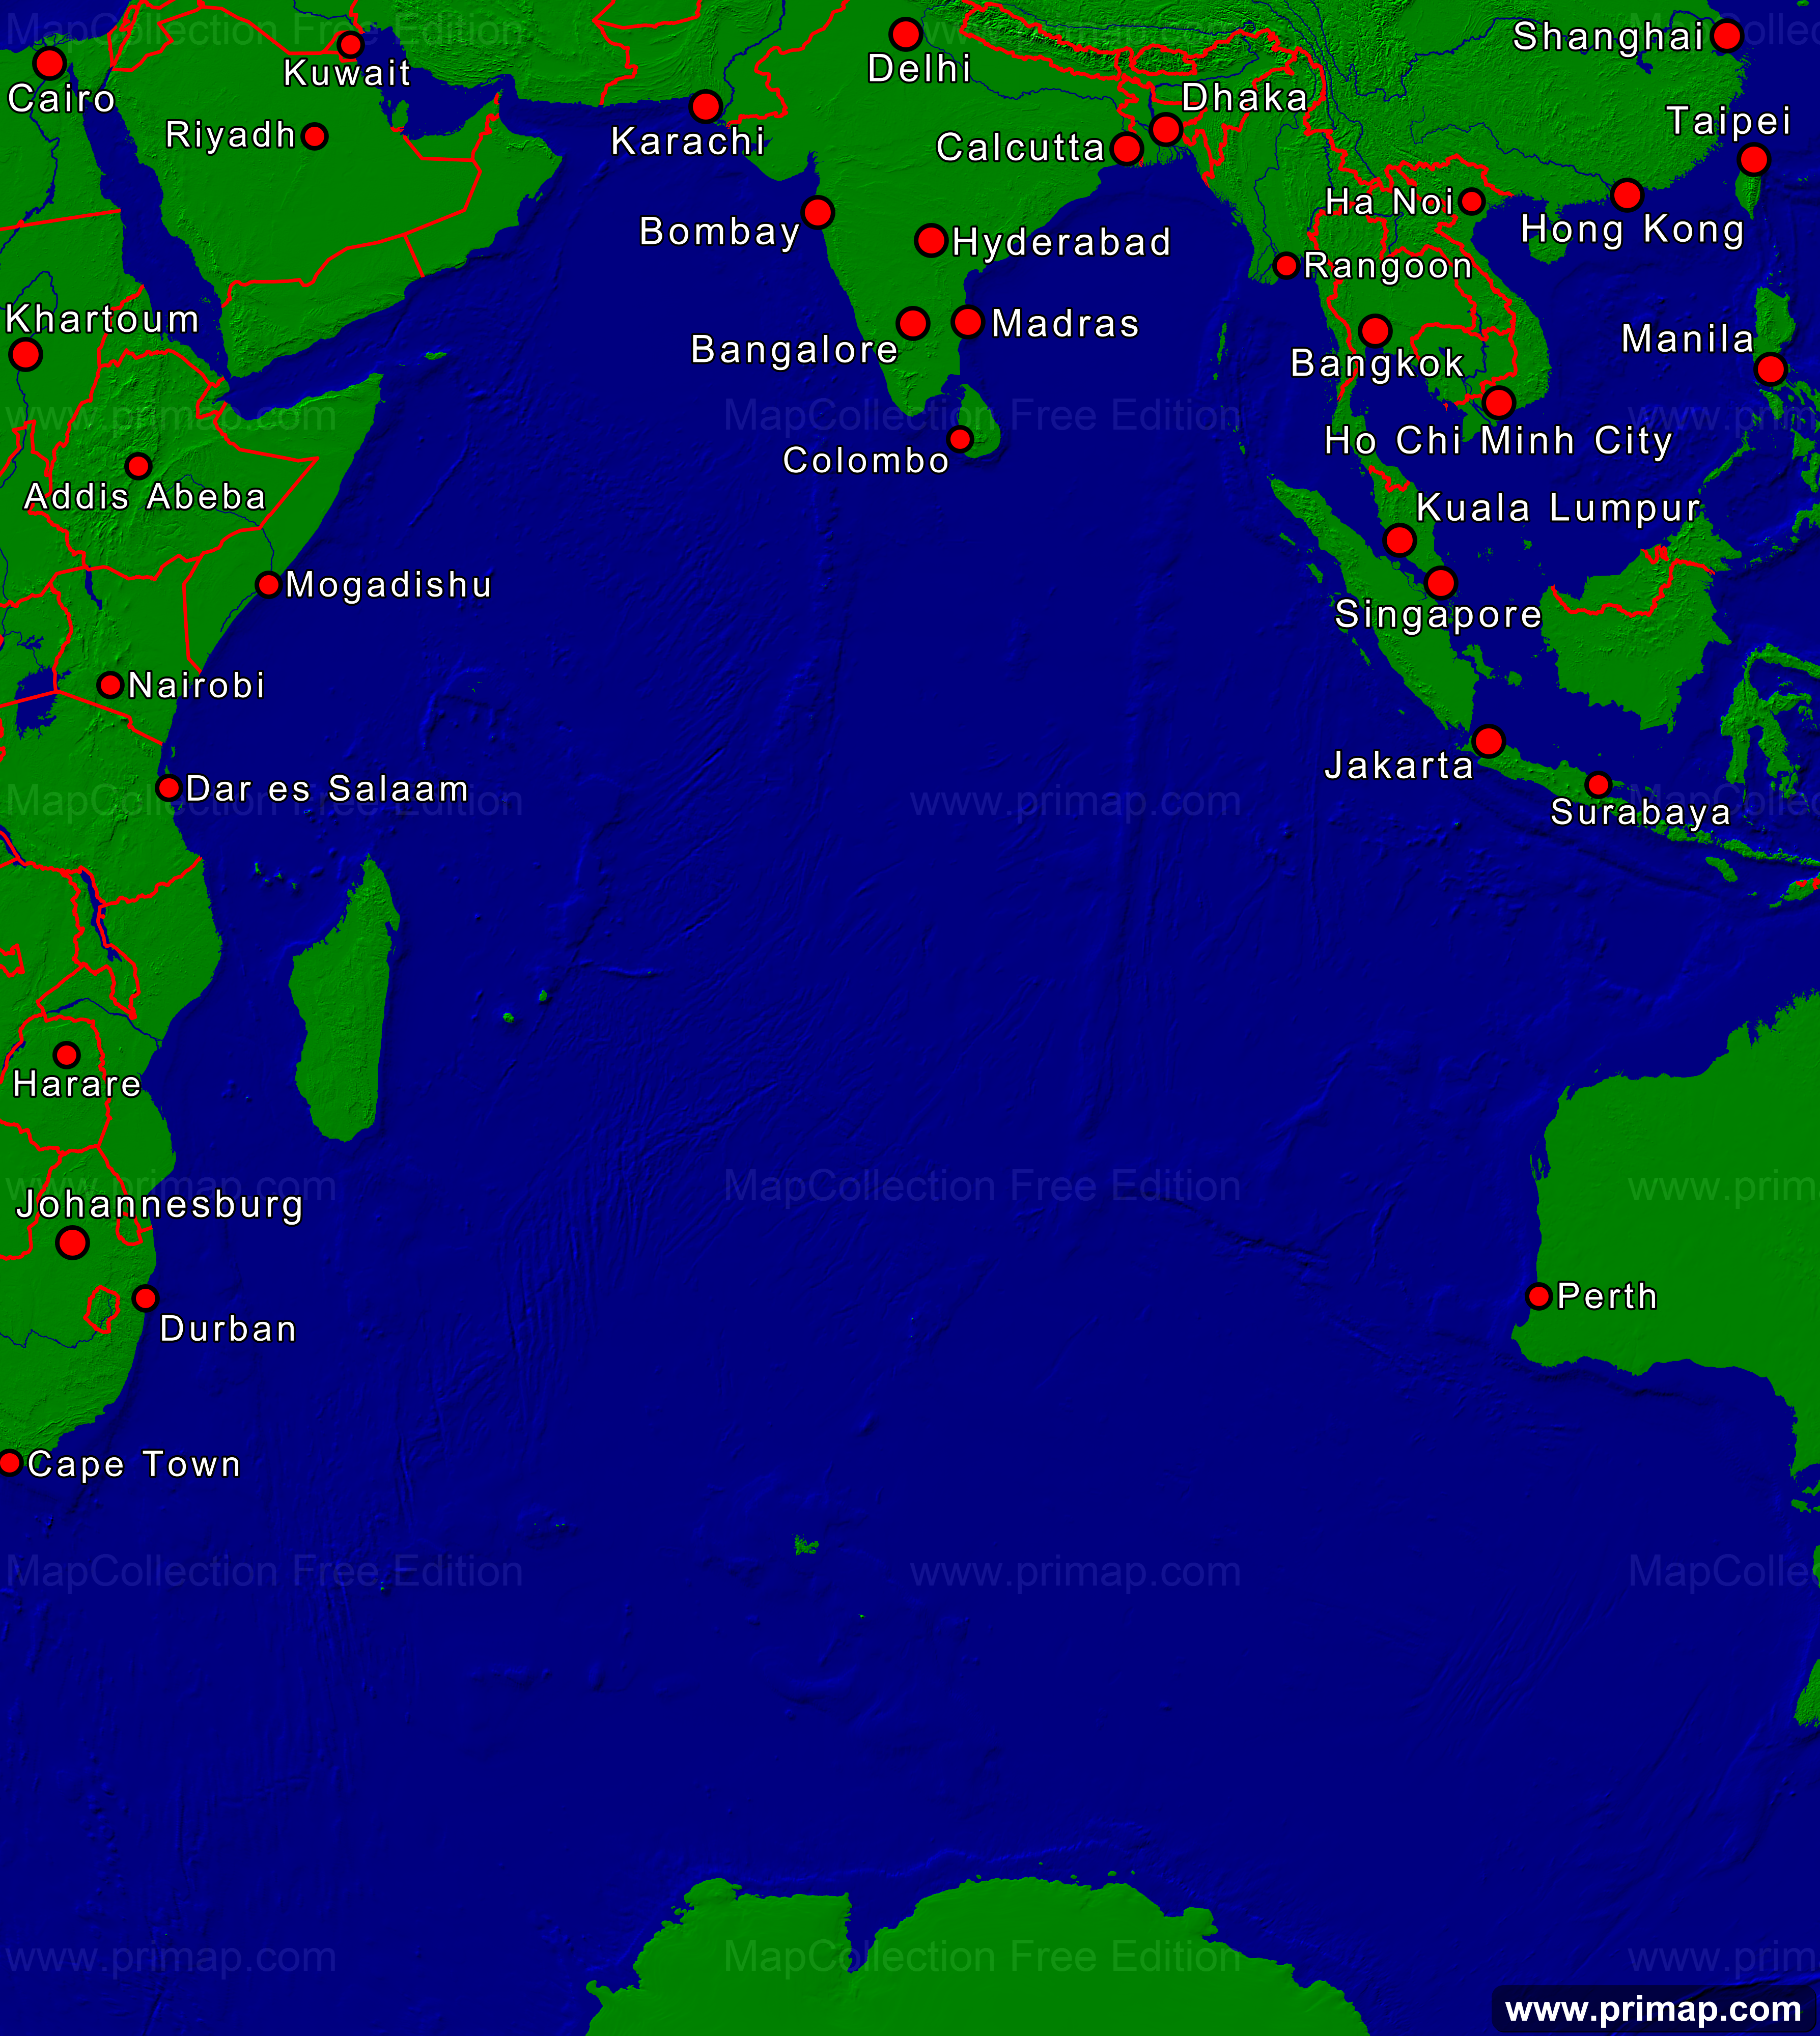 Primap marine charts indian ocean towns borders 3575x4000 show map gumiabroncs Images